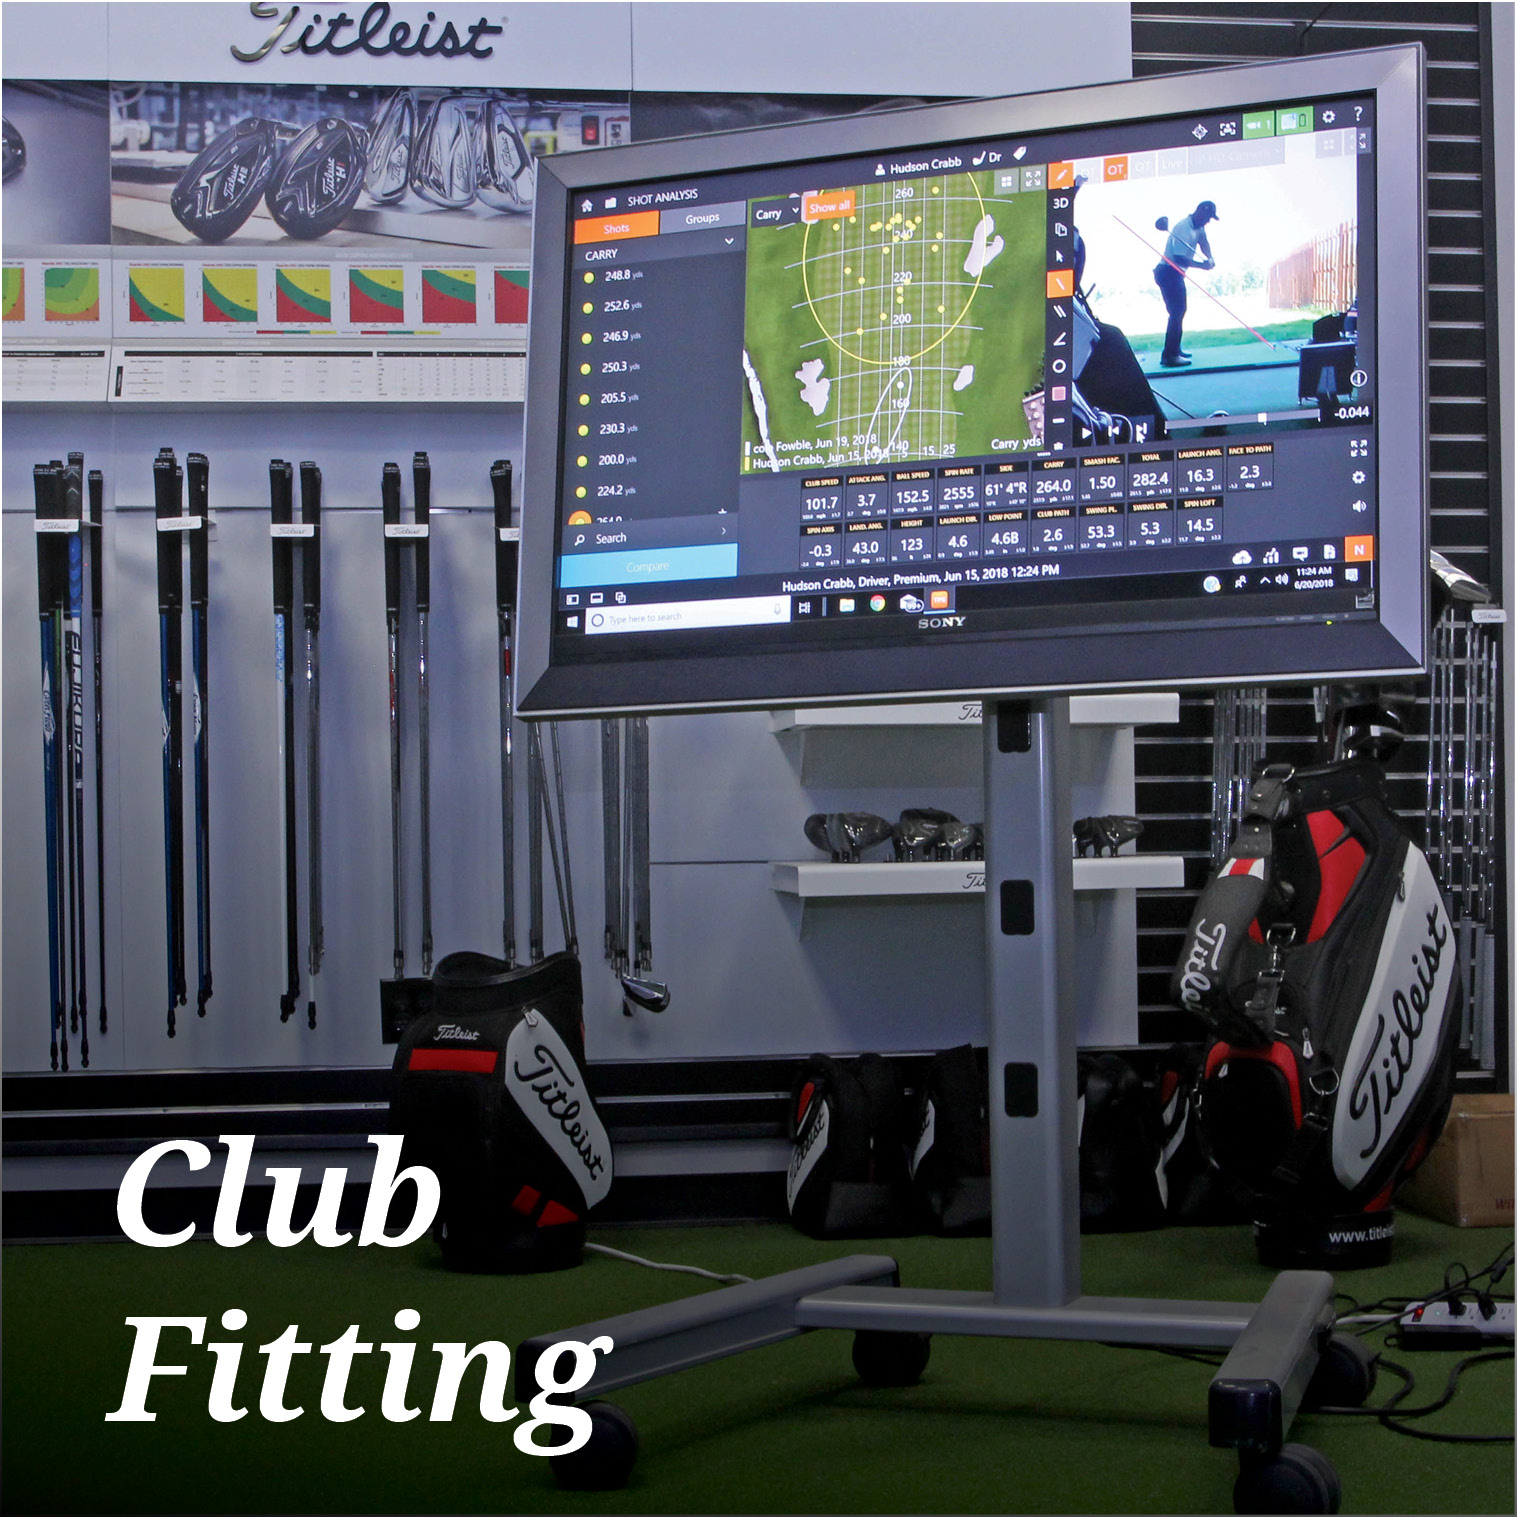 Club fitting